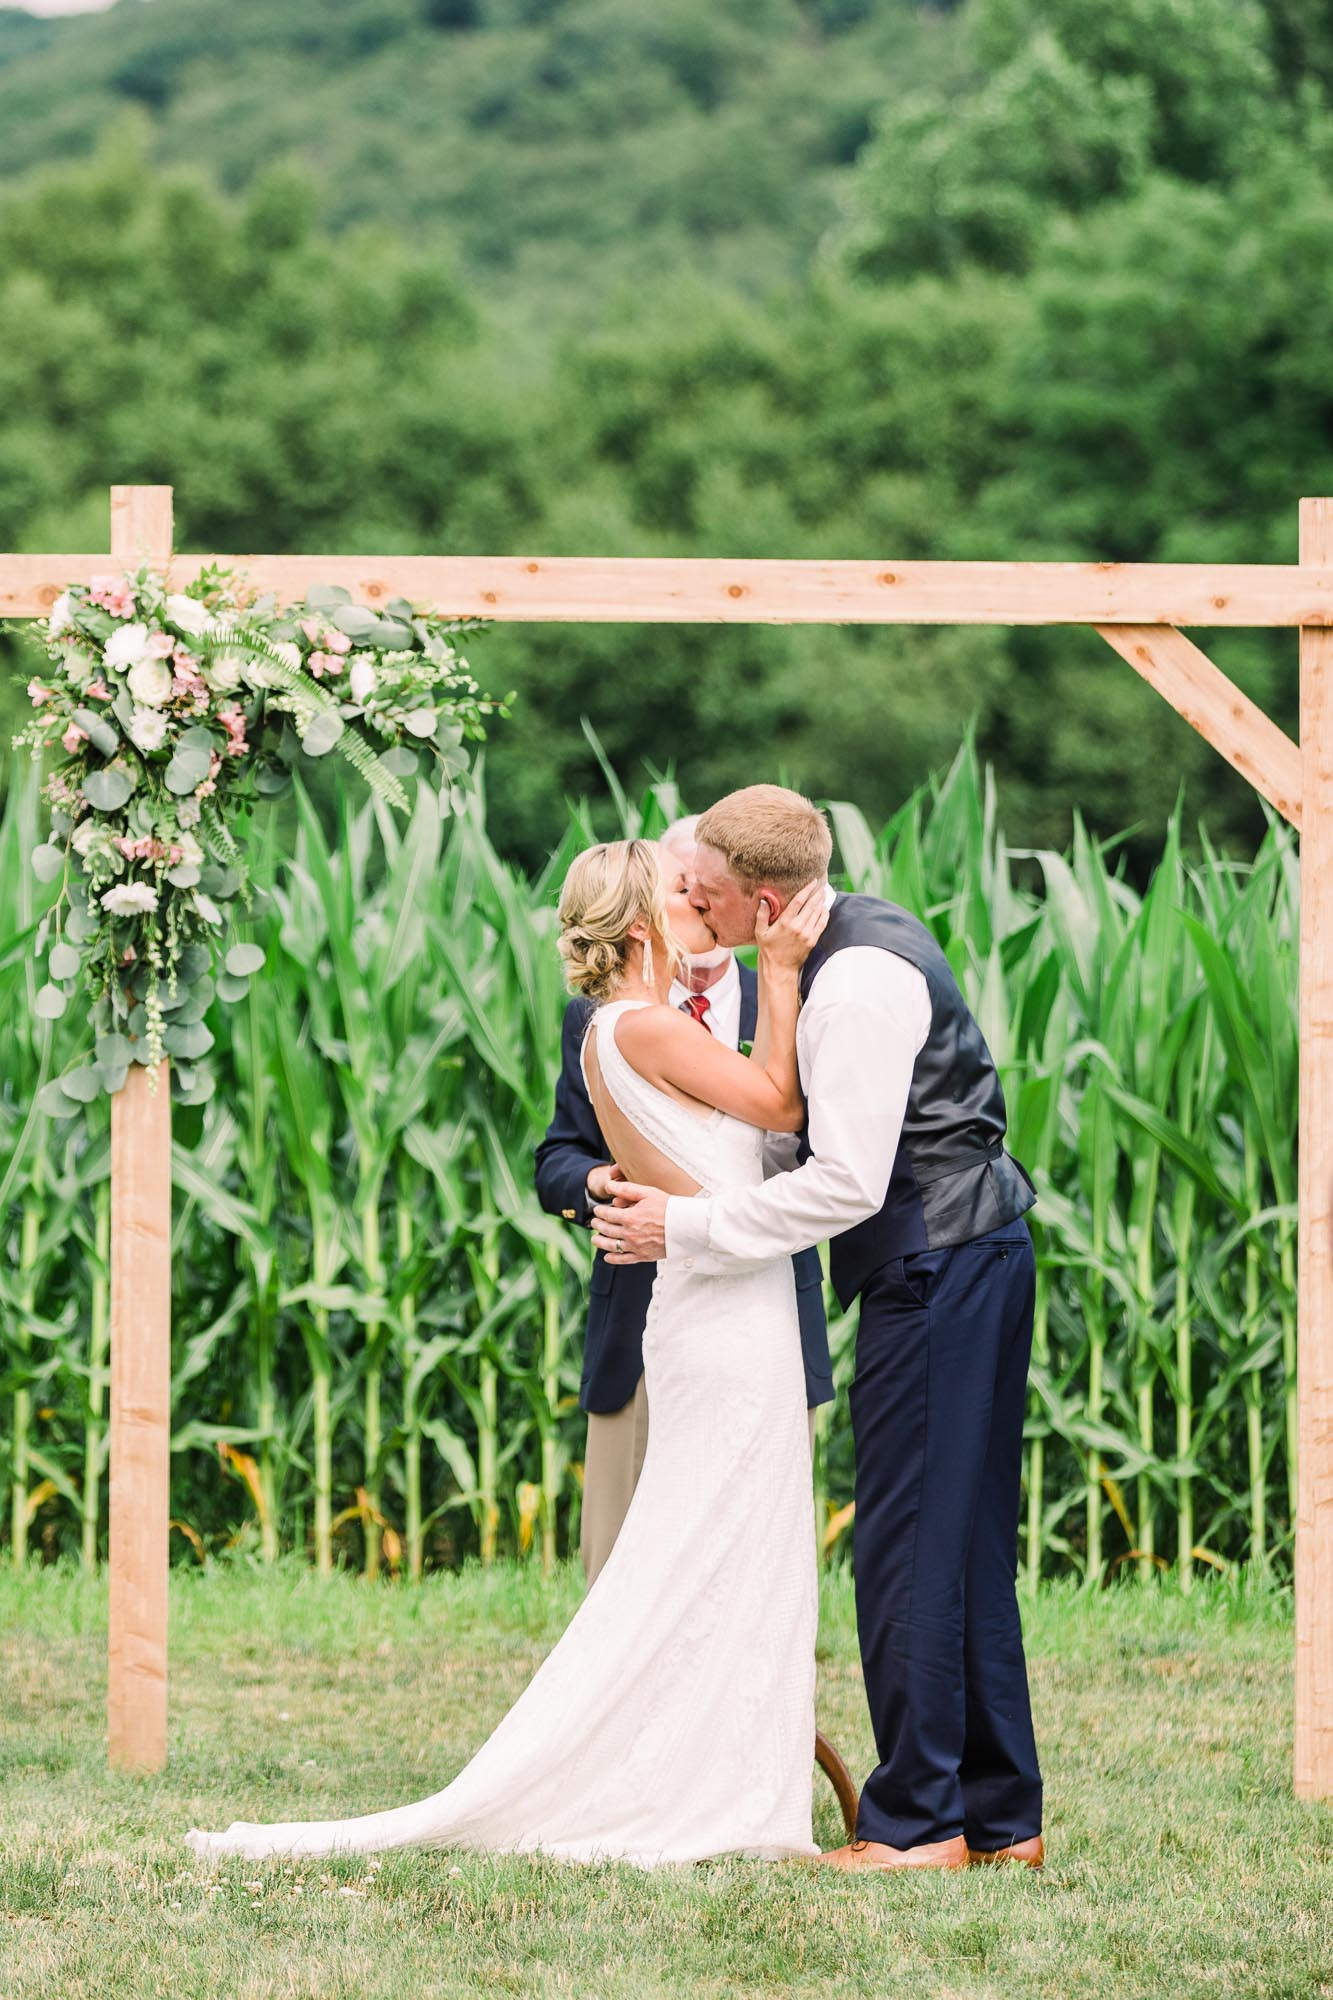 Muncy-backyard-farm-wedding-5025.jpg